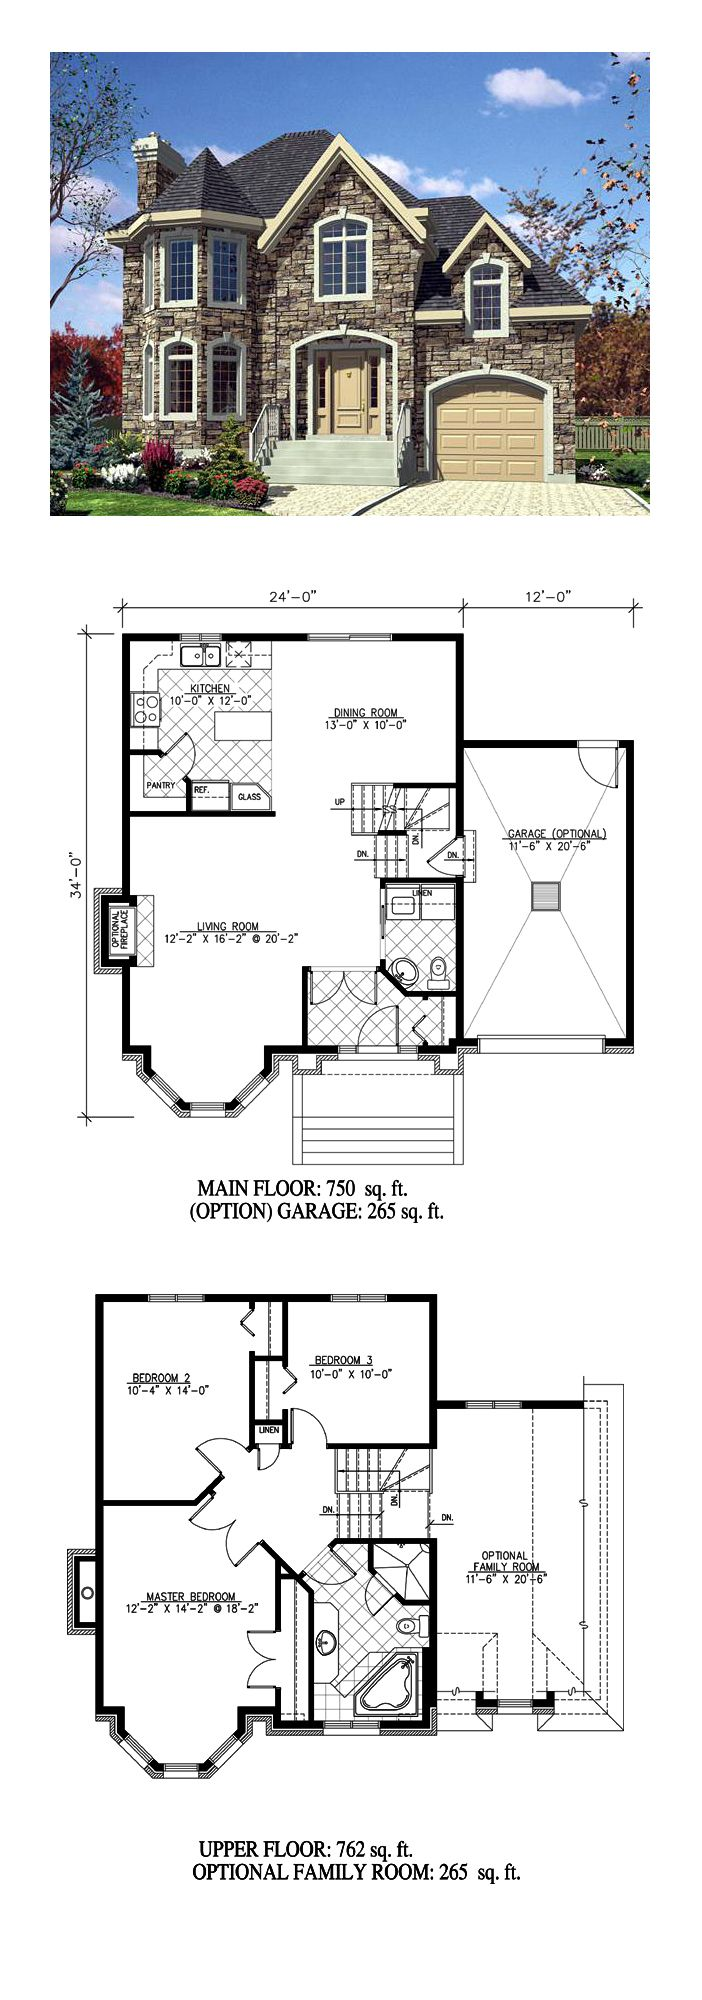 Best 25 sims house ideas on pinterest sims house plans House plans mansion